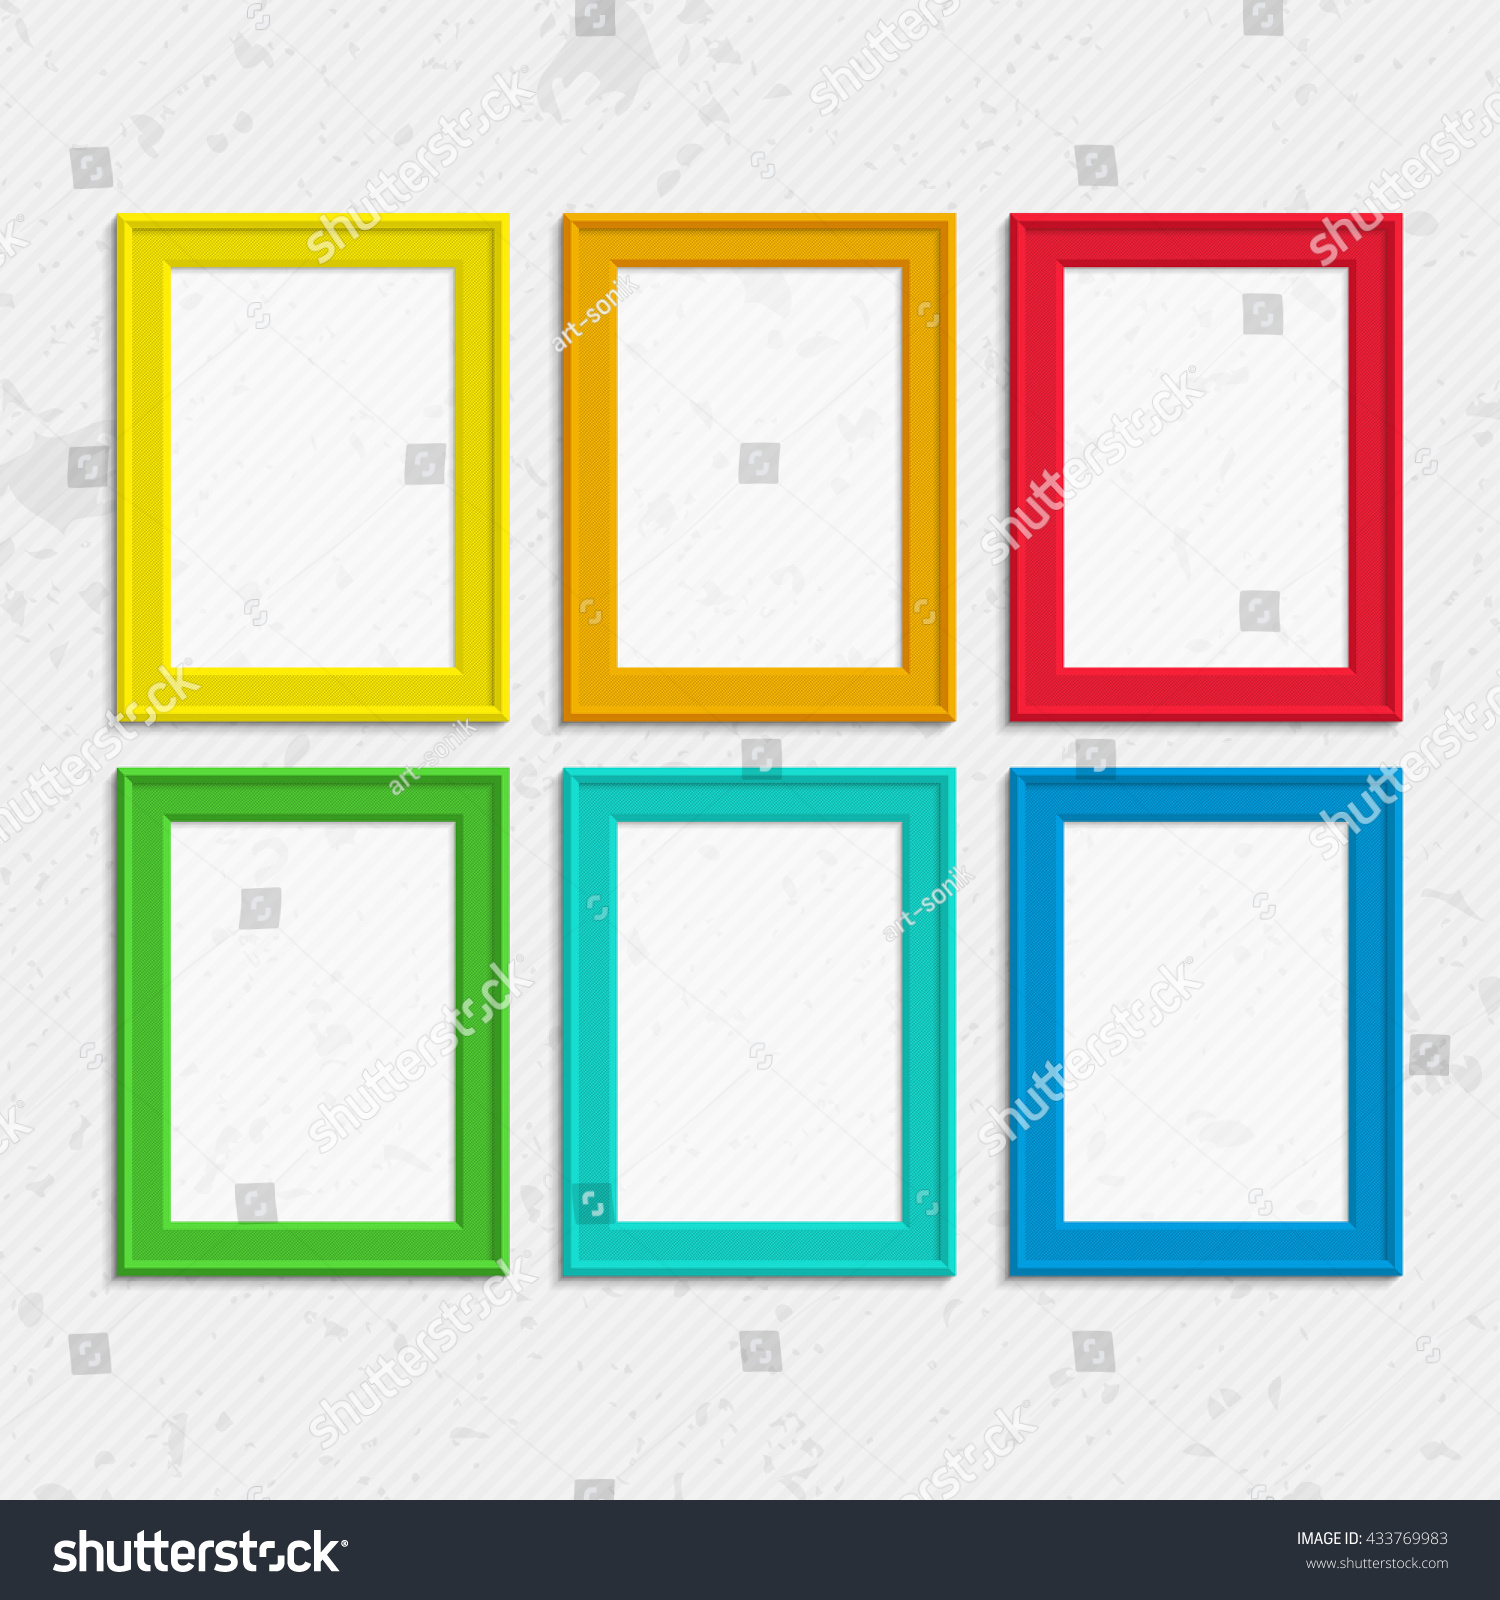 Set Colorful Wooden Frames Wooden Square Stock Photo (Photo, Vector ...